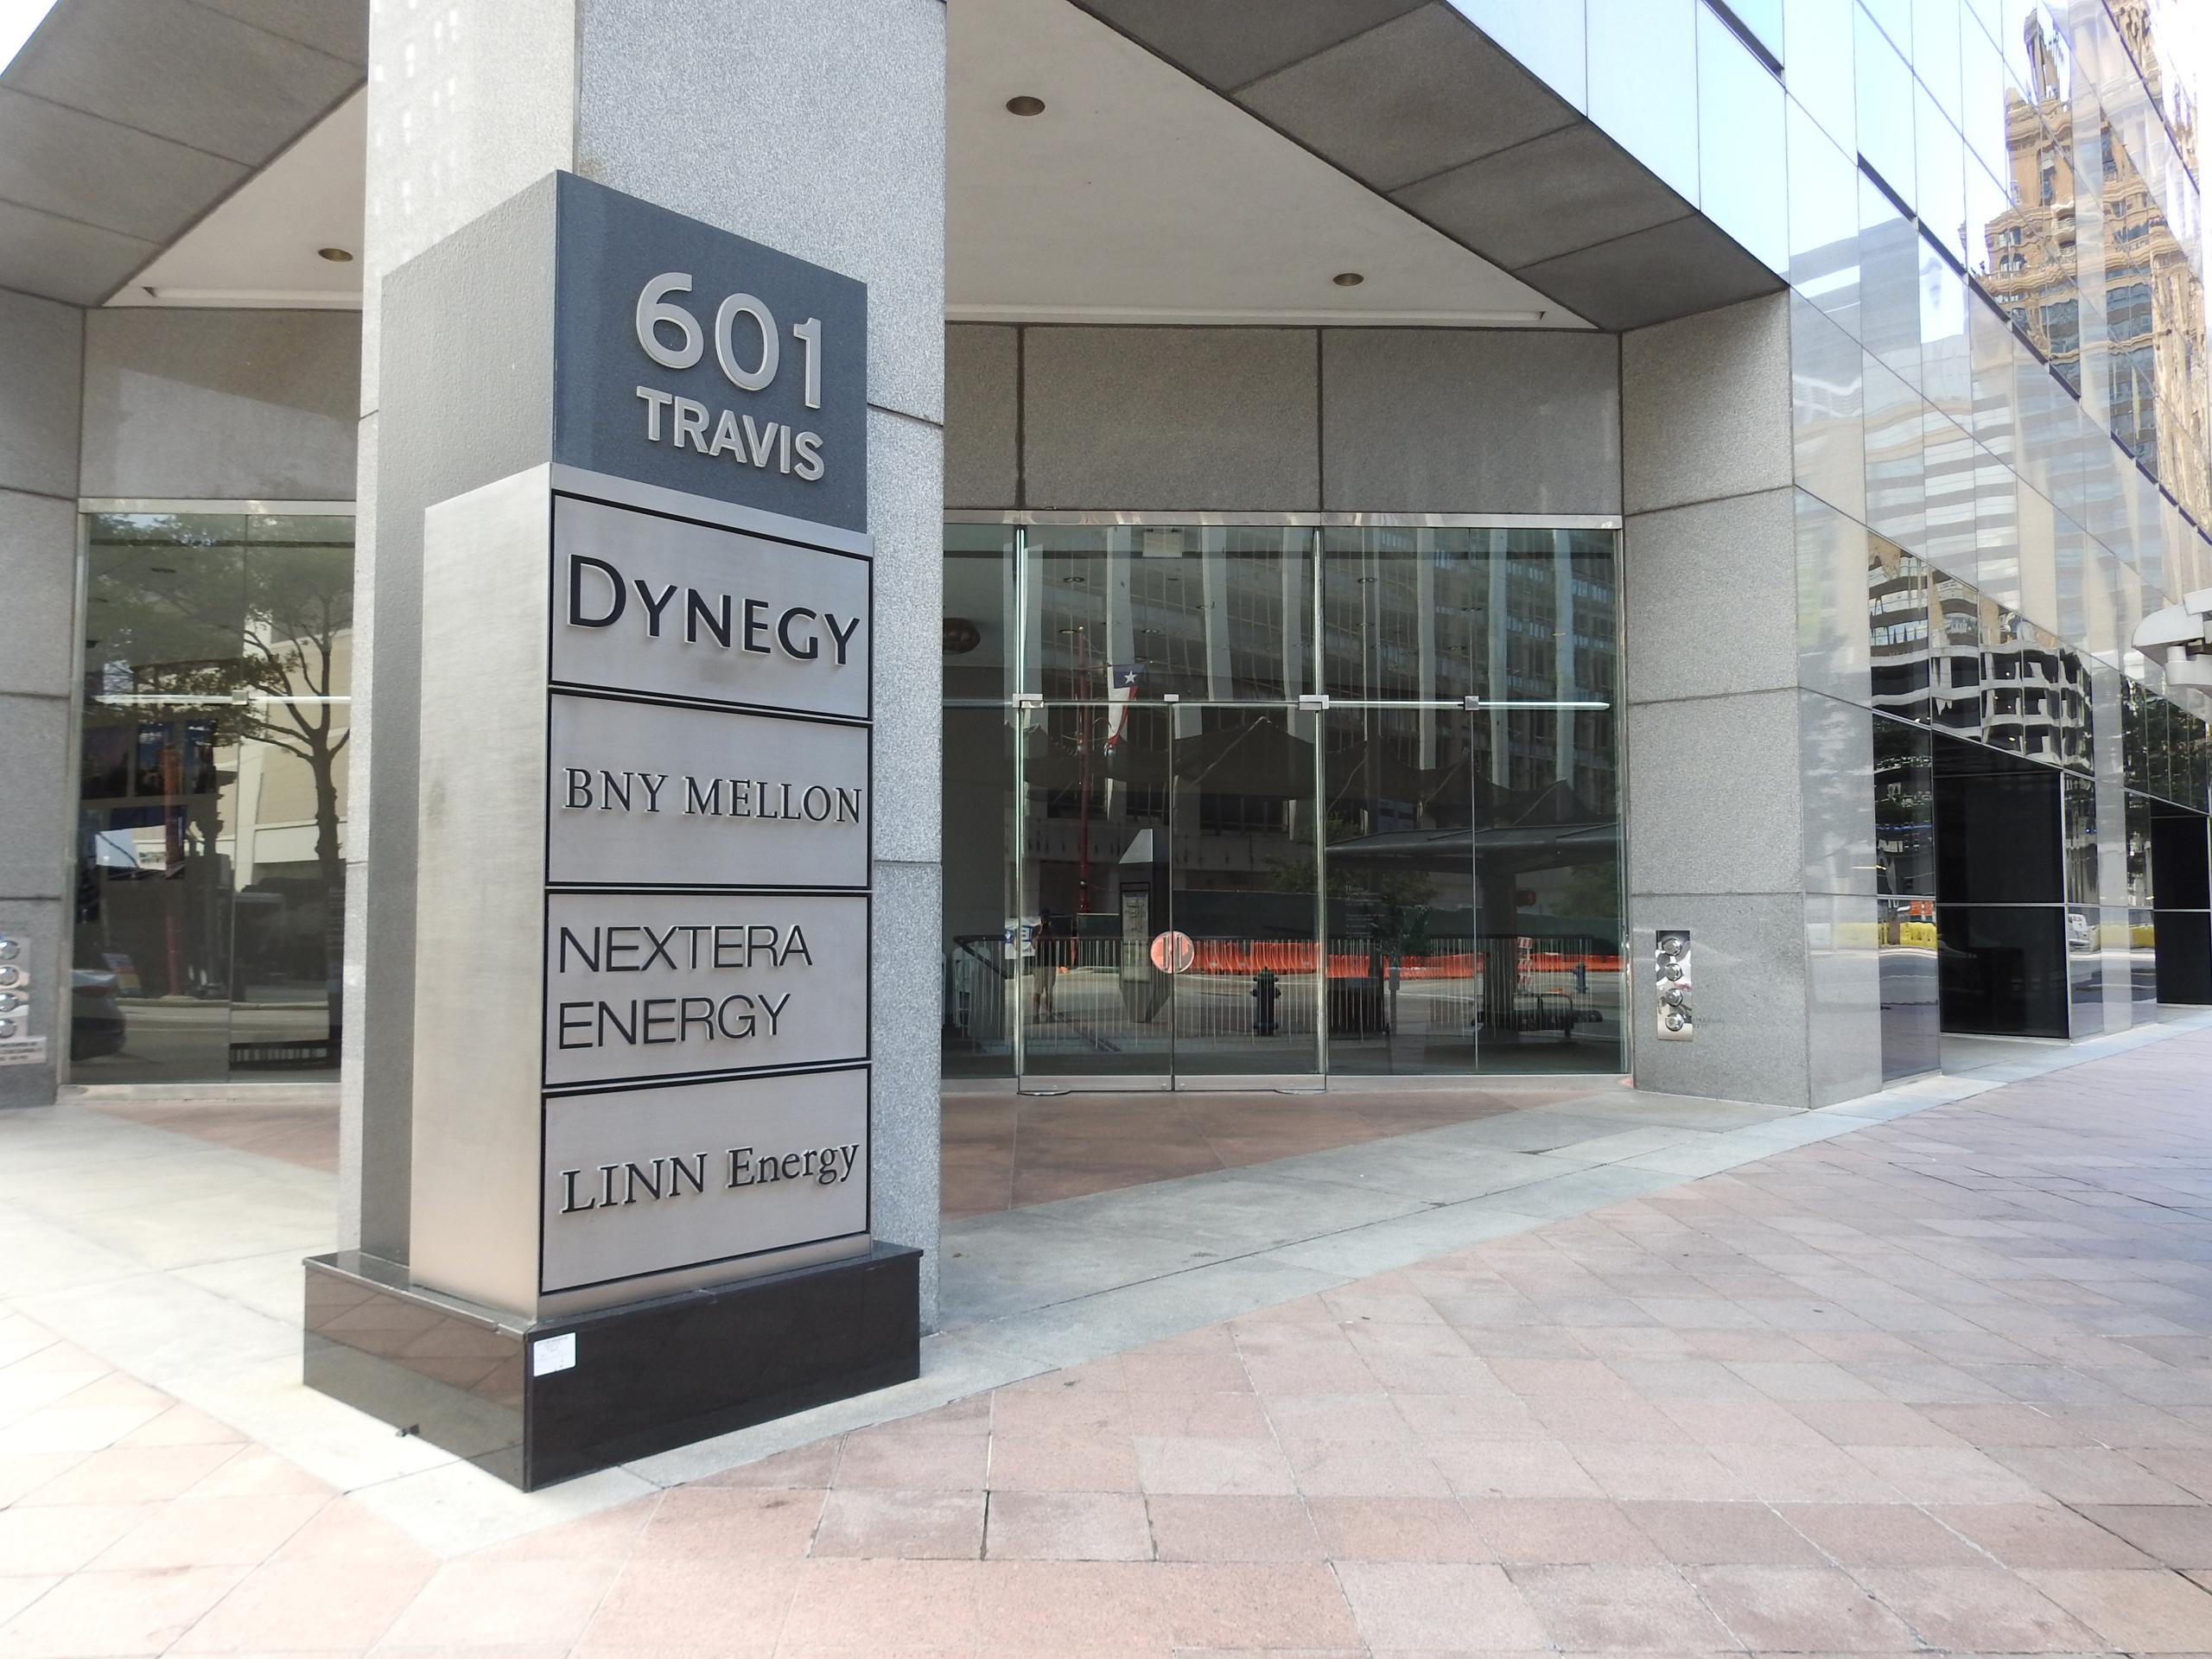 Entrance to Dynegy's corporate headquarters in Houston, Texas.